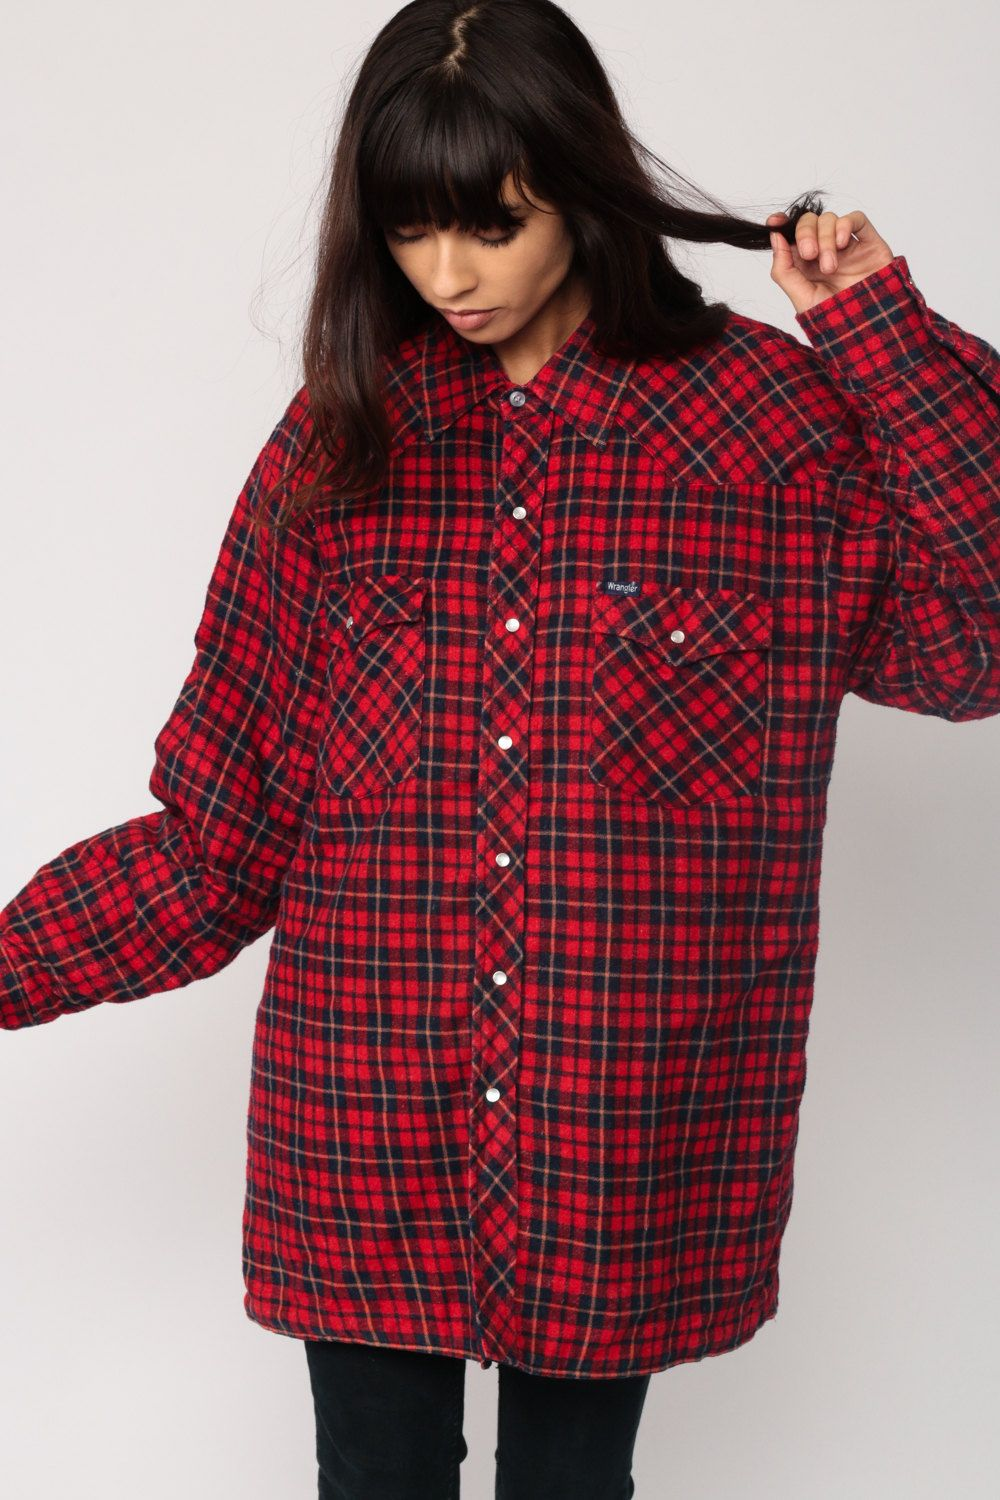 5dfa5f44 Vintage 80s Western shirt by Wrangler with pearl snaps and a red and navy  blue plaid